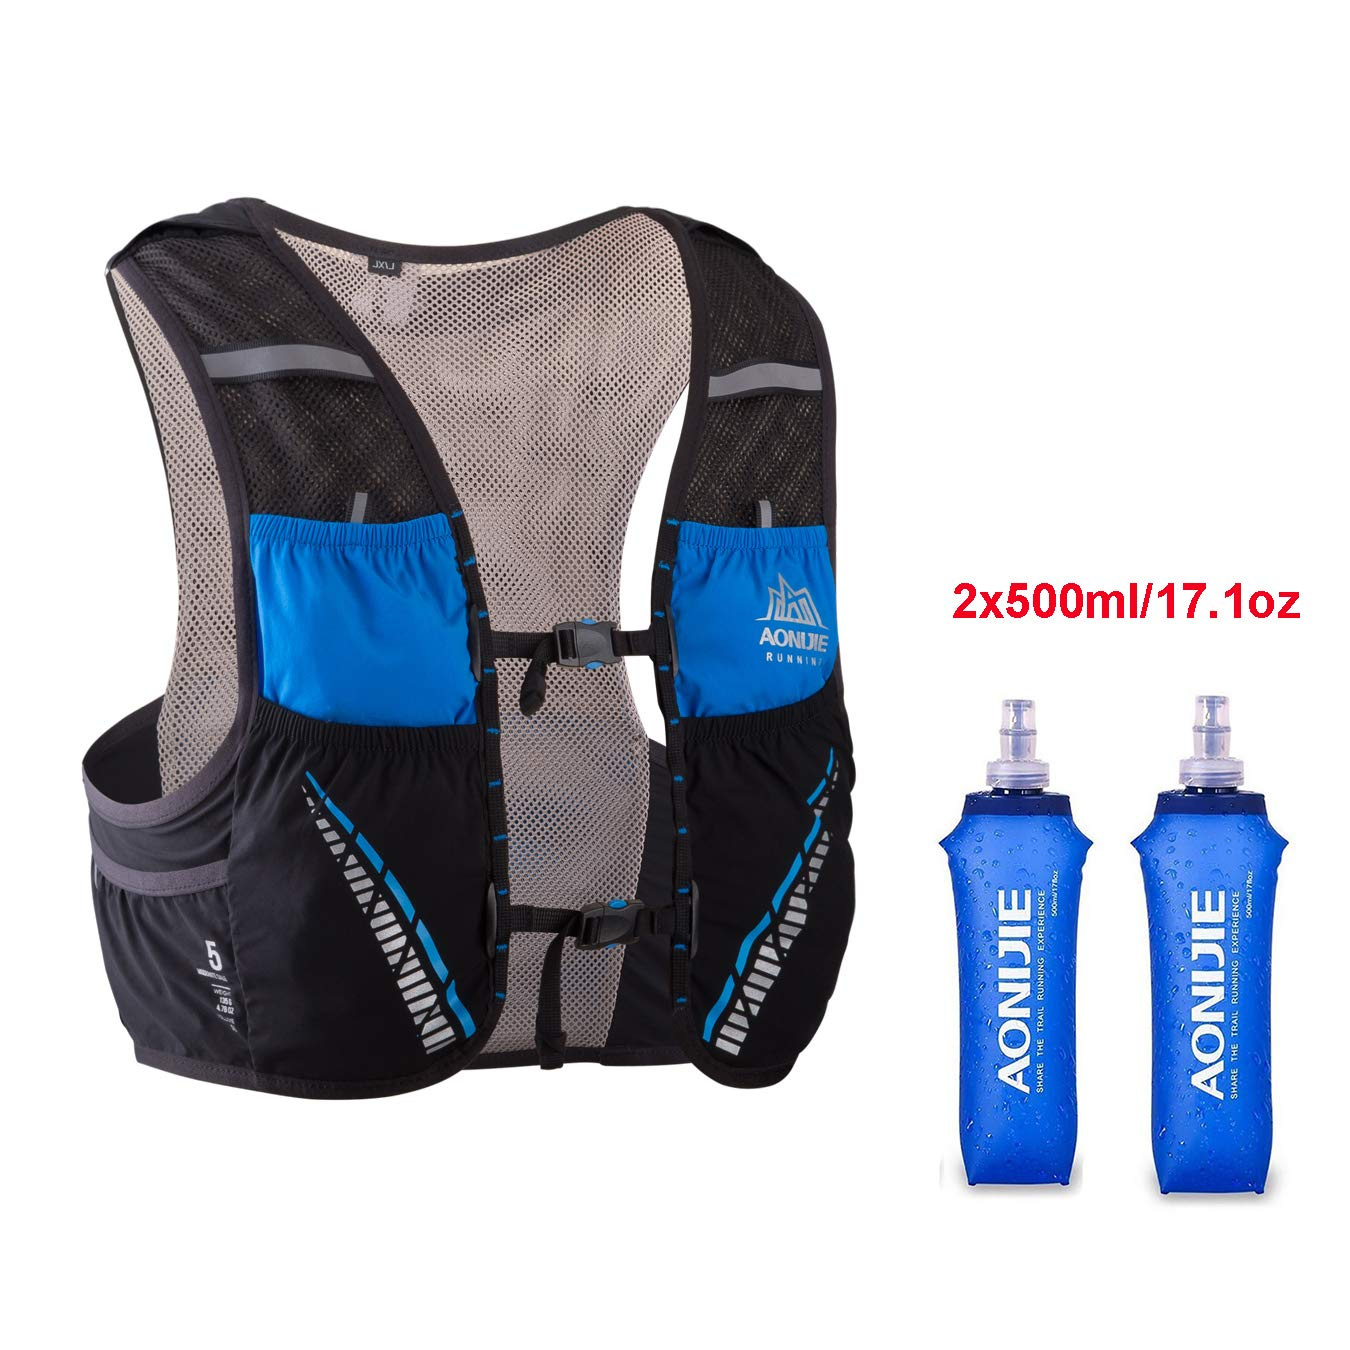 AONIJIE Hydration Pack Backpack with 2x500ml Water Bottles,Lightweight 5L Outdoor Marathoner Running Race Hydration Vest for Cycling Hiking (Black&Blue, S/M(29.5-33in))